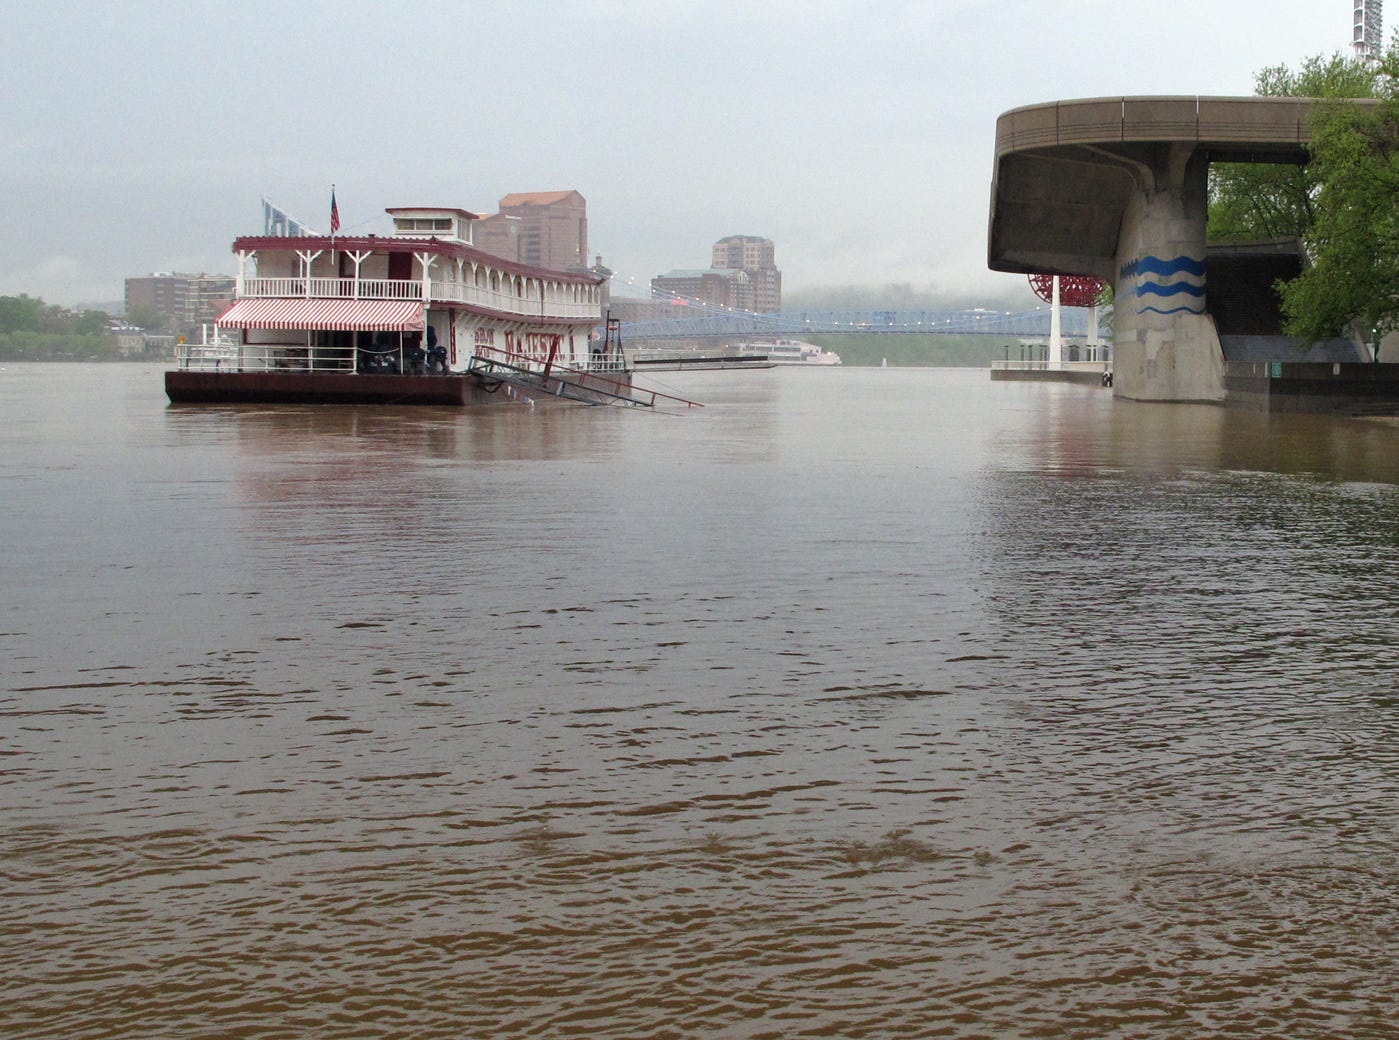 The Public Landing is totally covered by water and the Showboat Majestic moors close to the US Bank Arena steps in 2011.